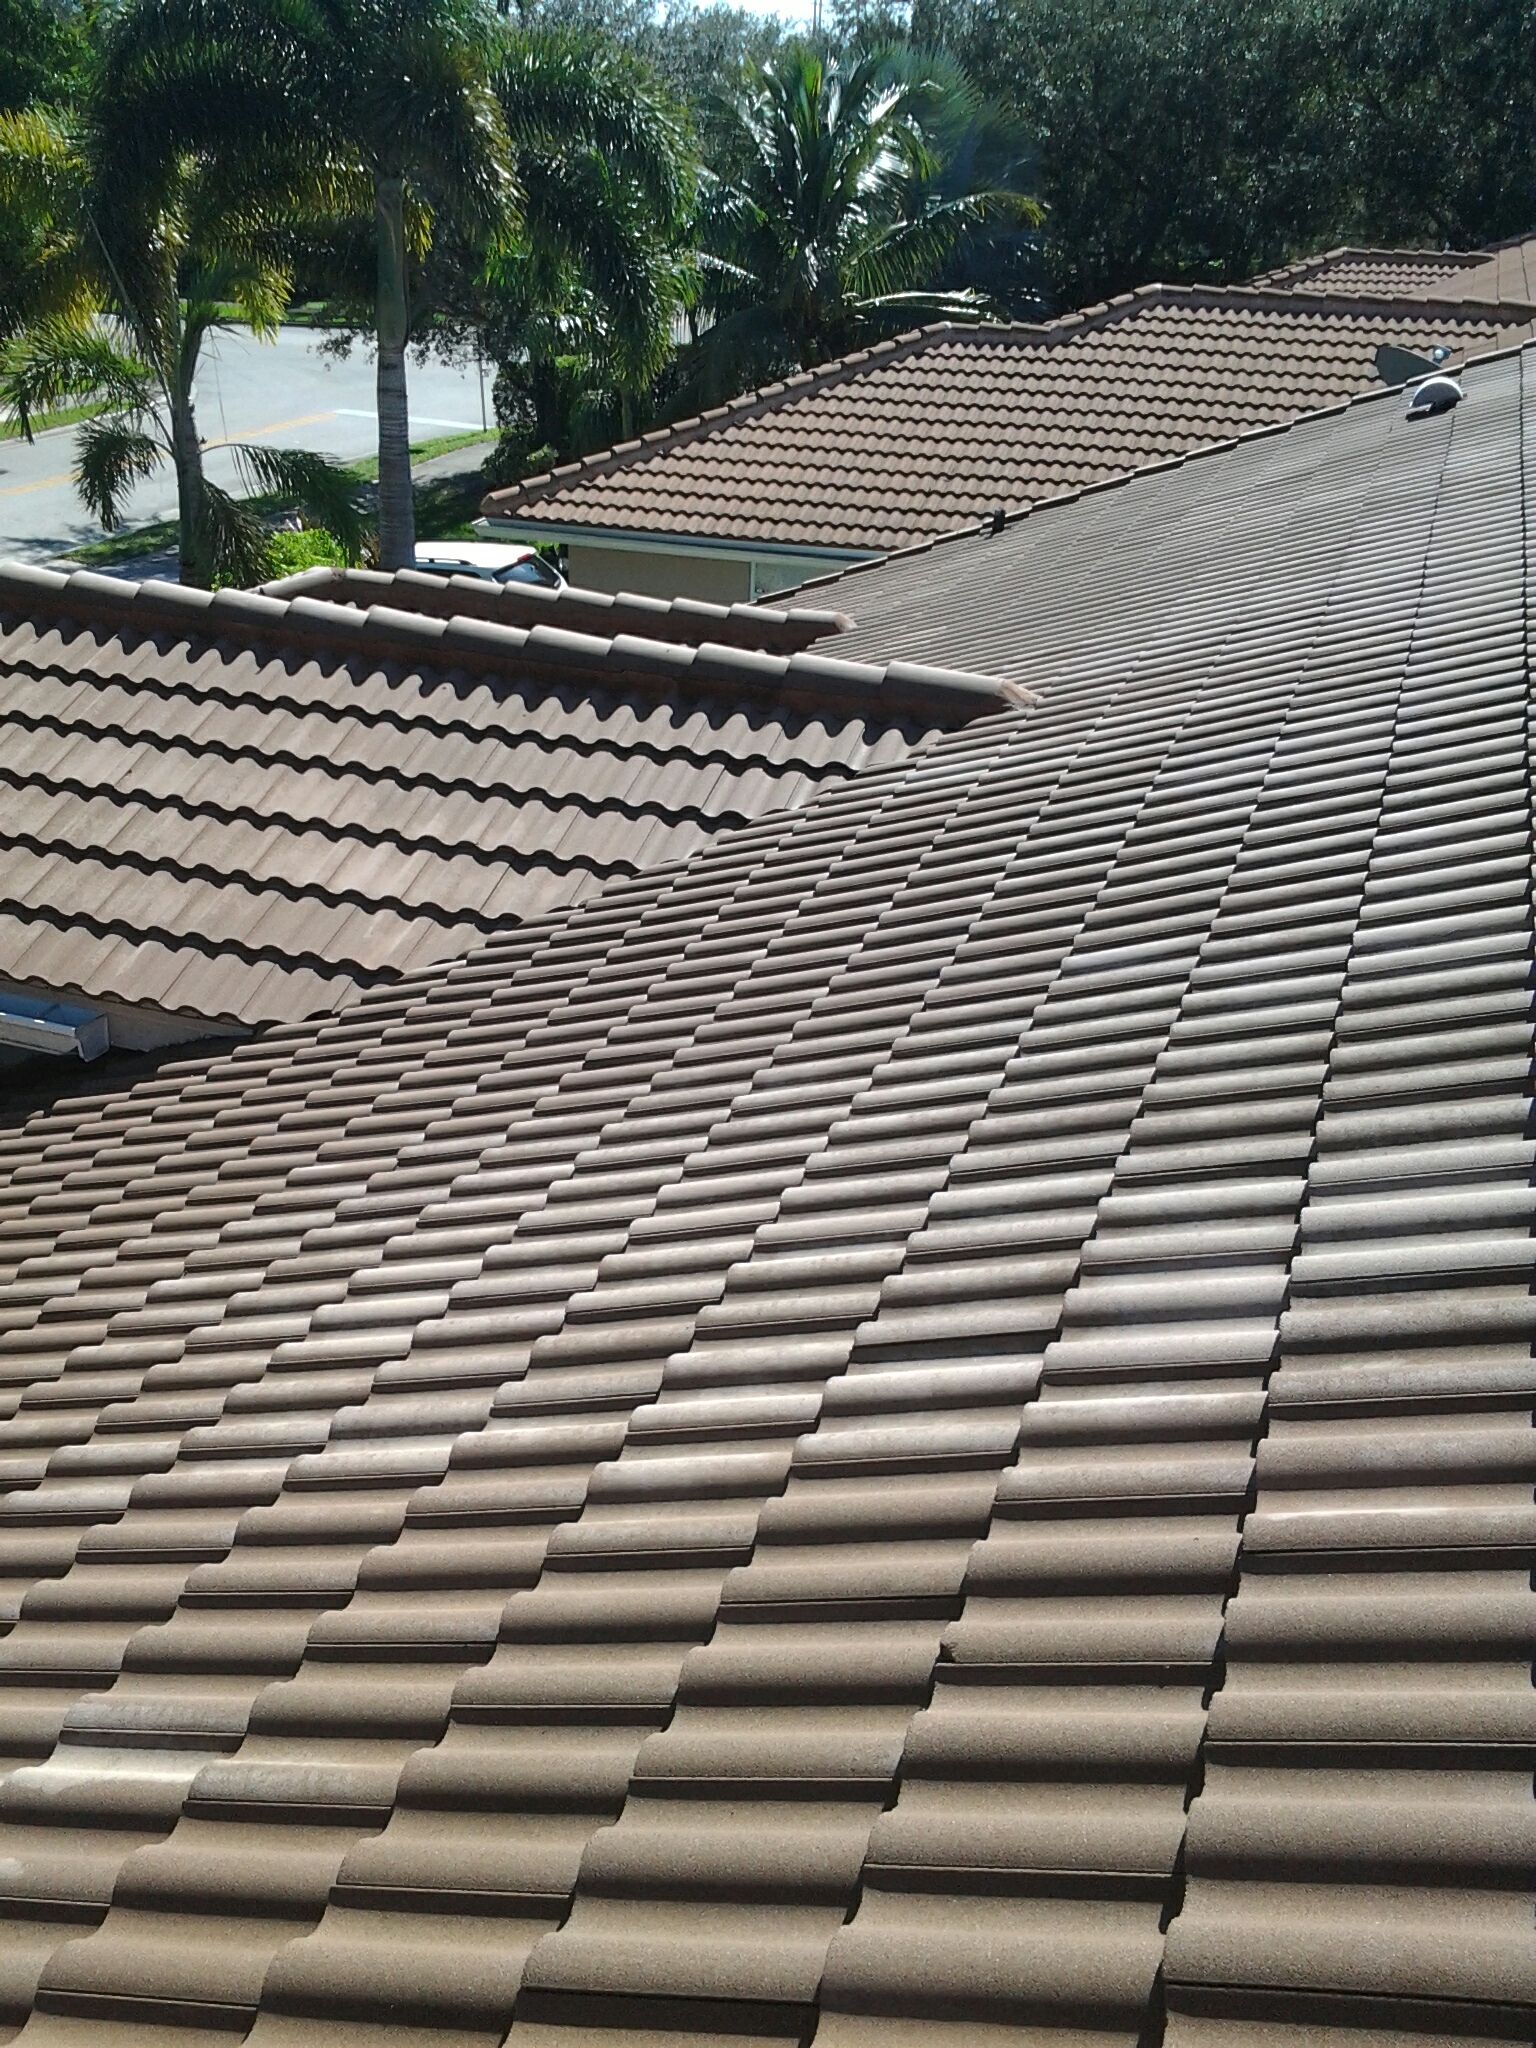 Coral Springs, FL - Pressure clean and roof a cide roof